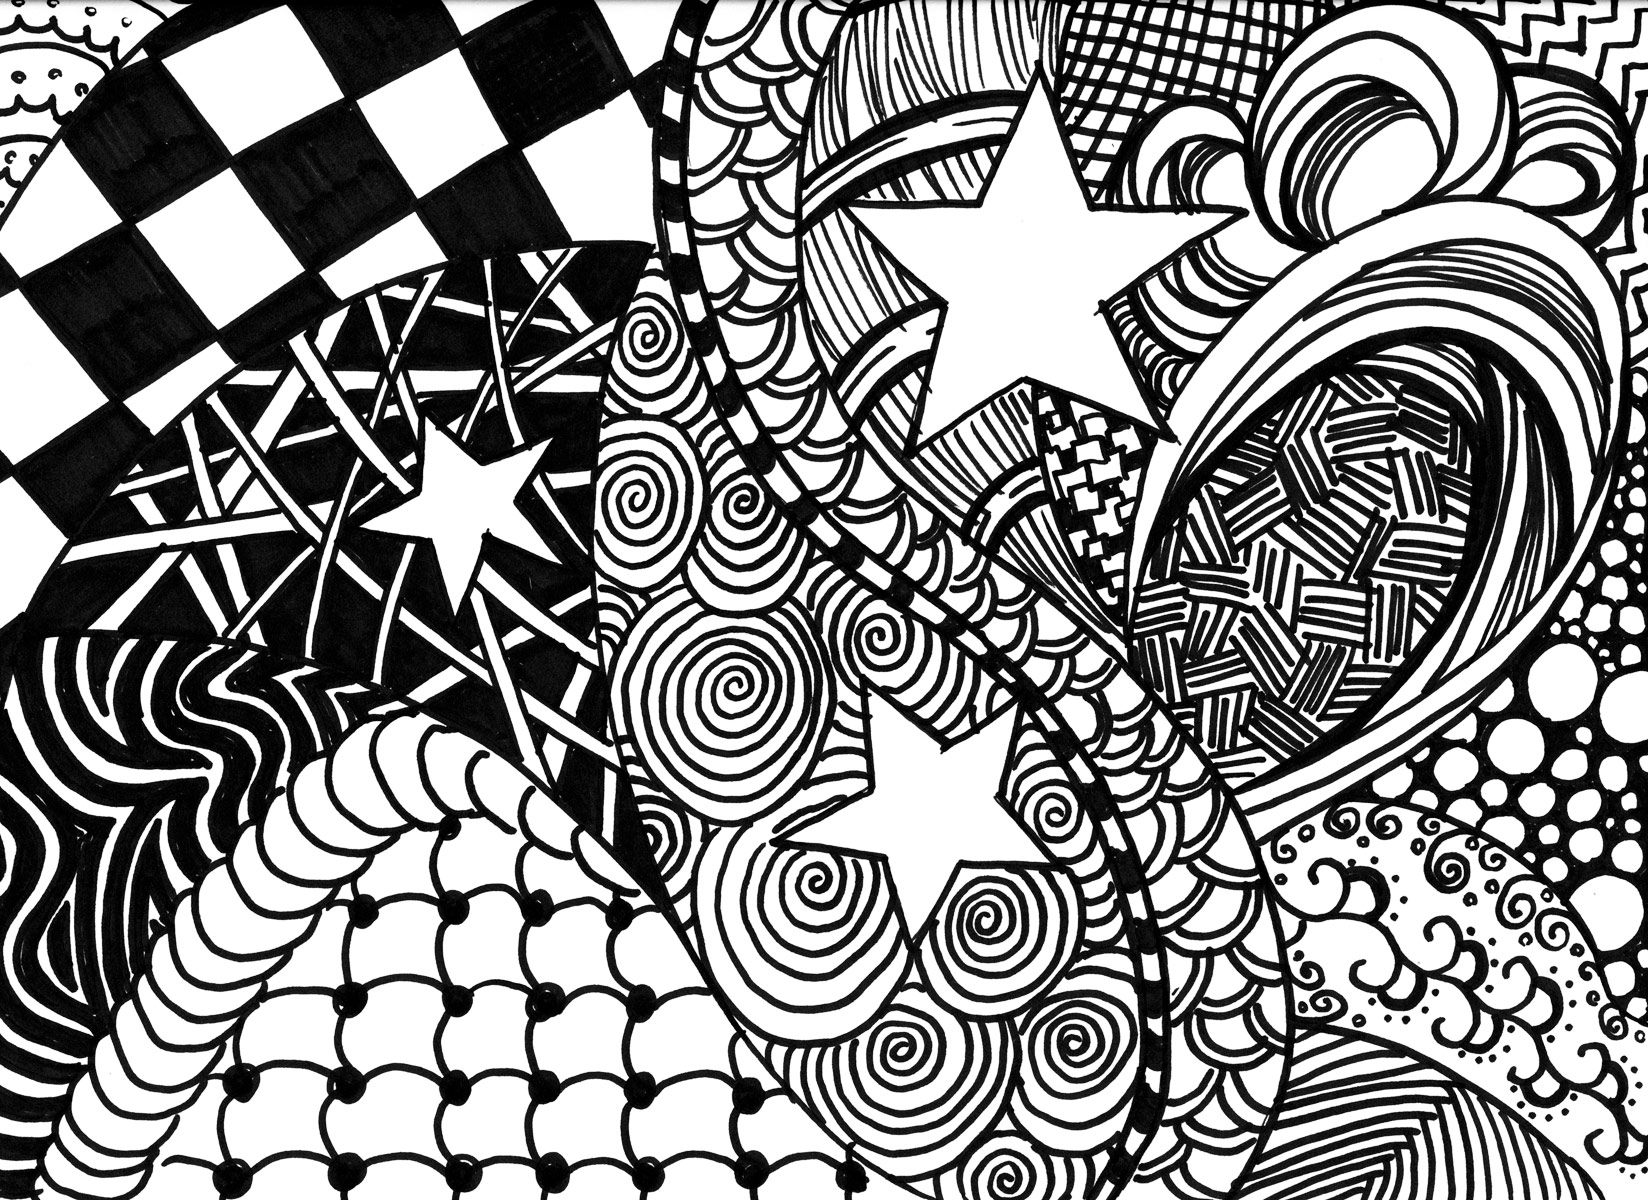 Easy Doodle Art Designs : Zentangle: coping with cancer through doodle art